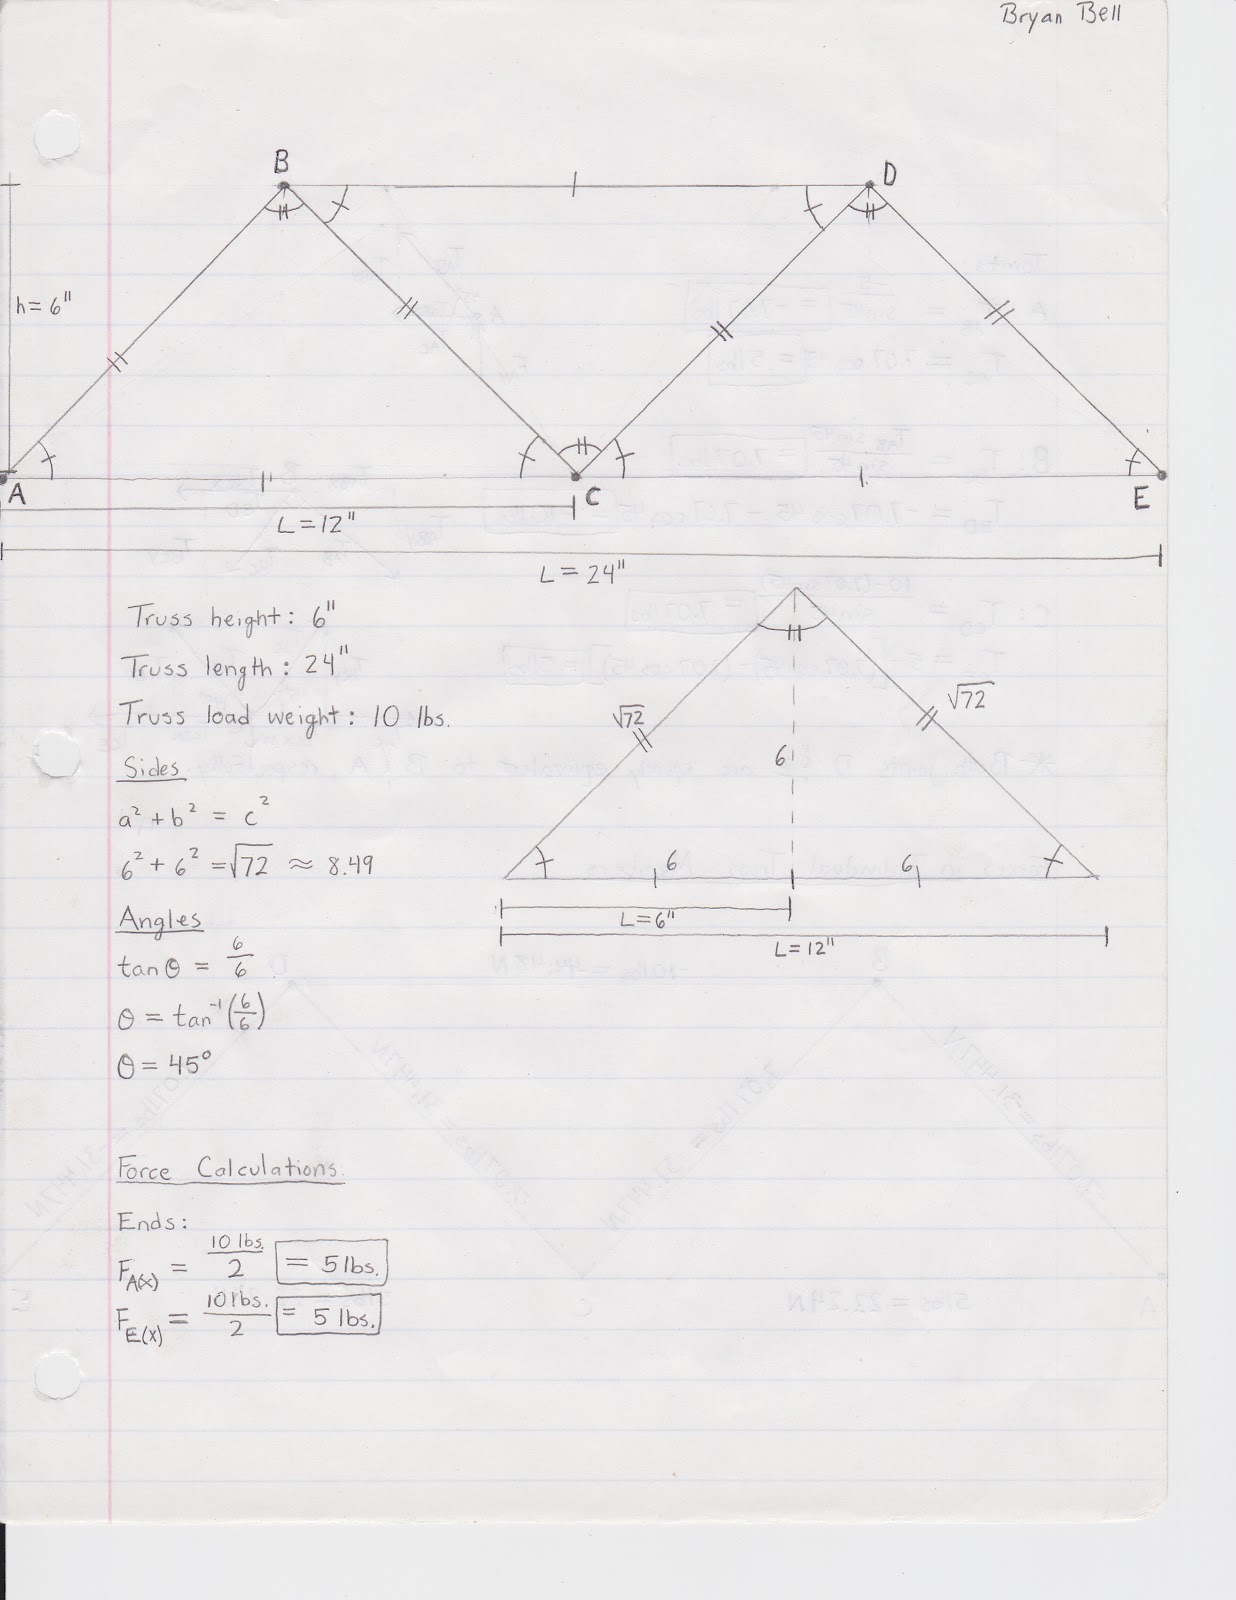 medium resolution of it was just simple trigonometry and force diagrams to figure out the force on each member both in pounds and in newtons the results of my truss analysis is